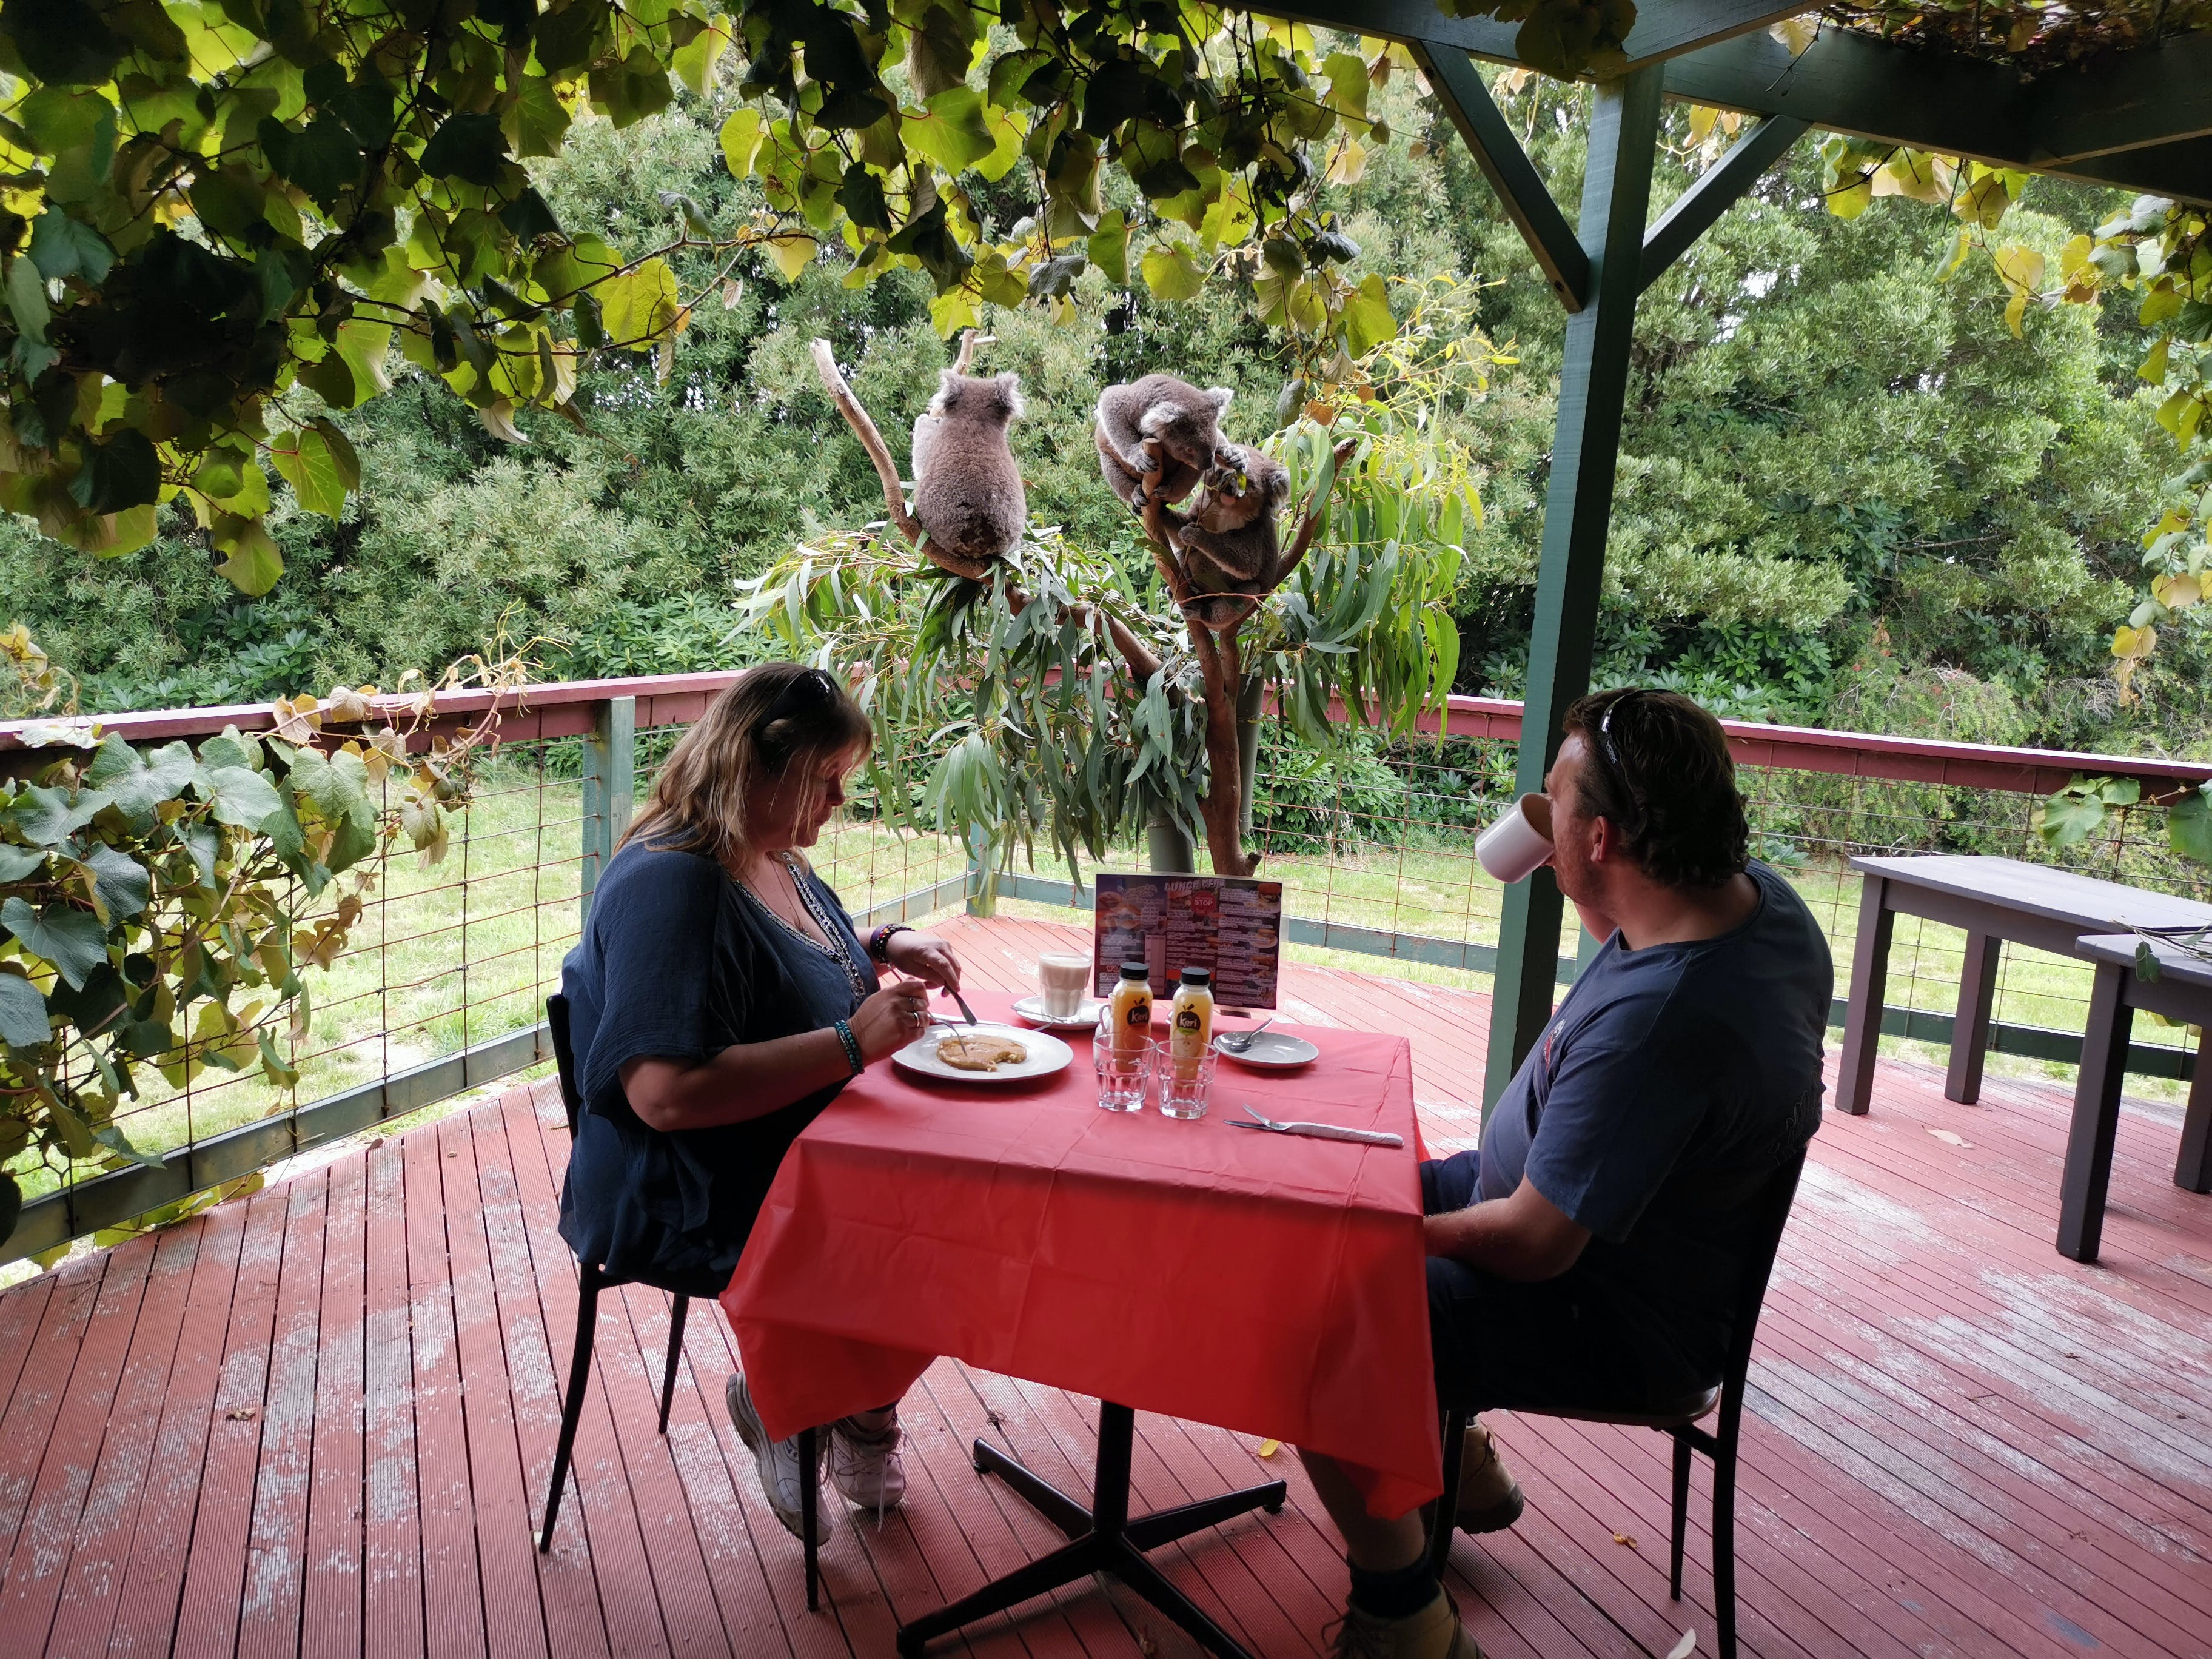 The Aussie Stop offering Breakfast with Koalas - Newcastle Accommodation